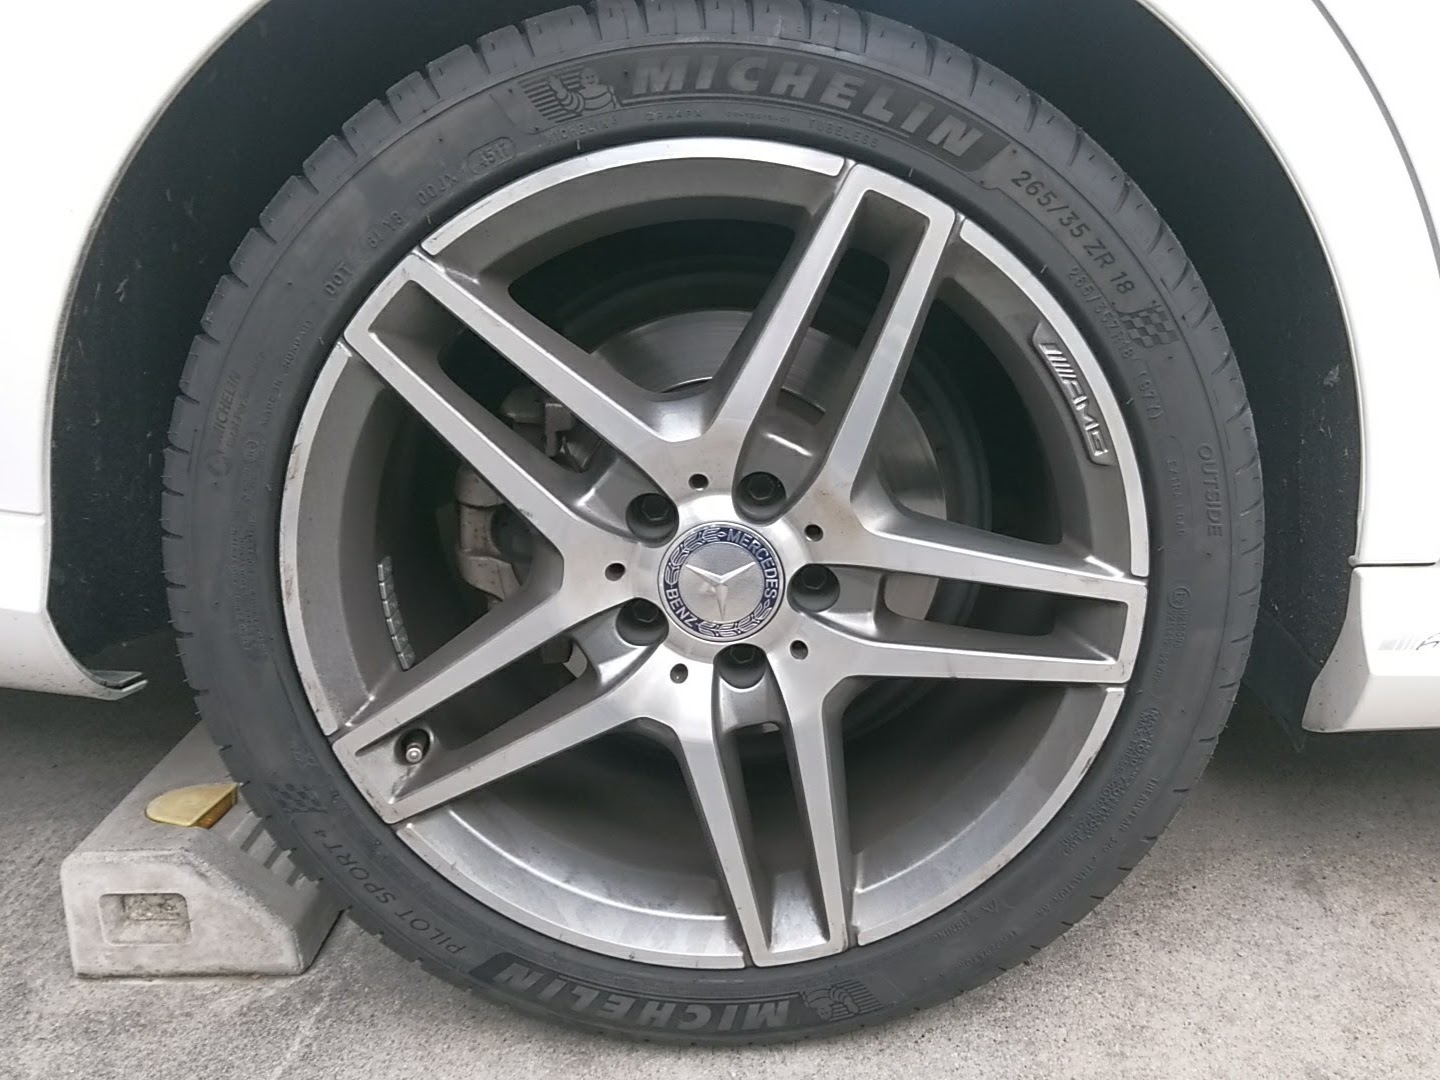 後輪タイヤ交換 [Michelin PILOT SPORT 4 265/35ZR18]